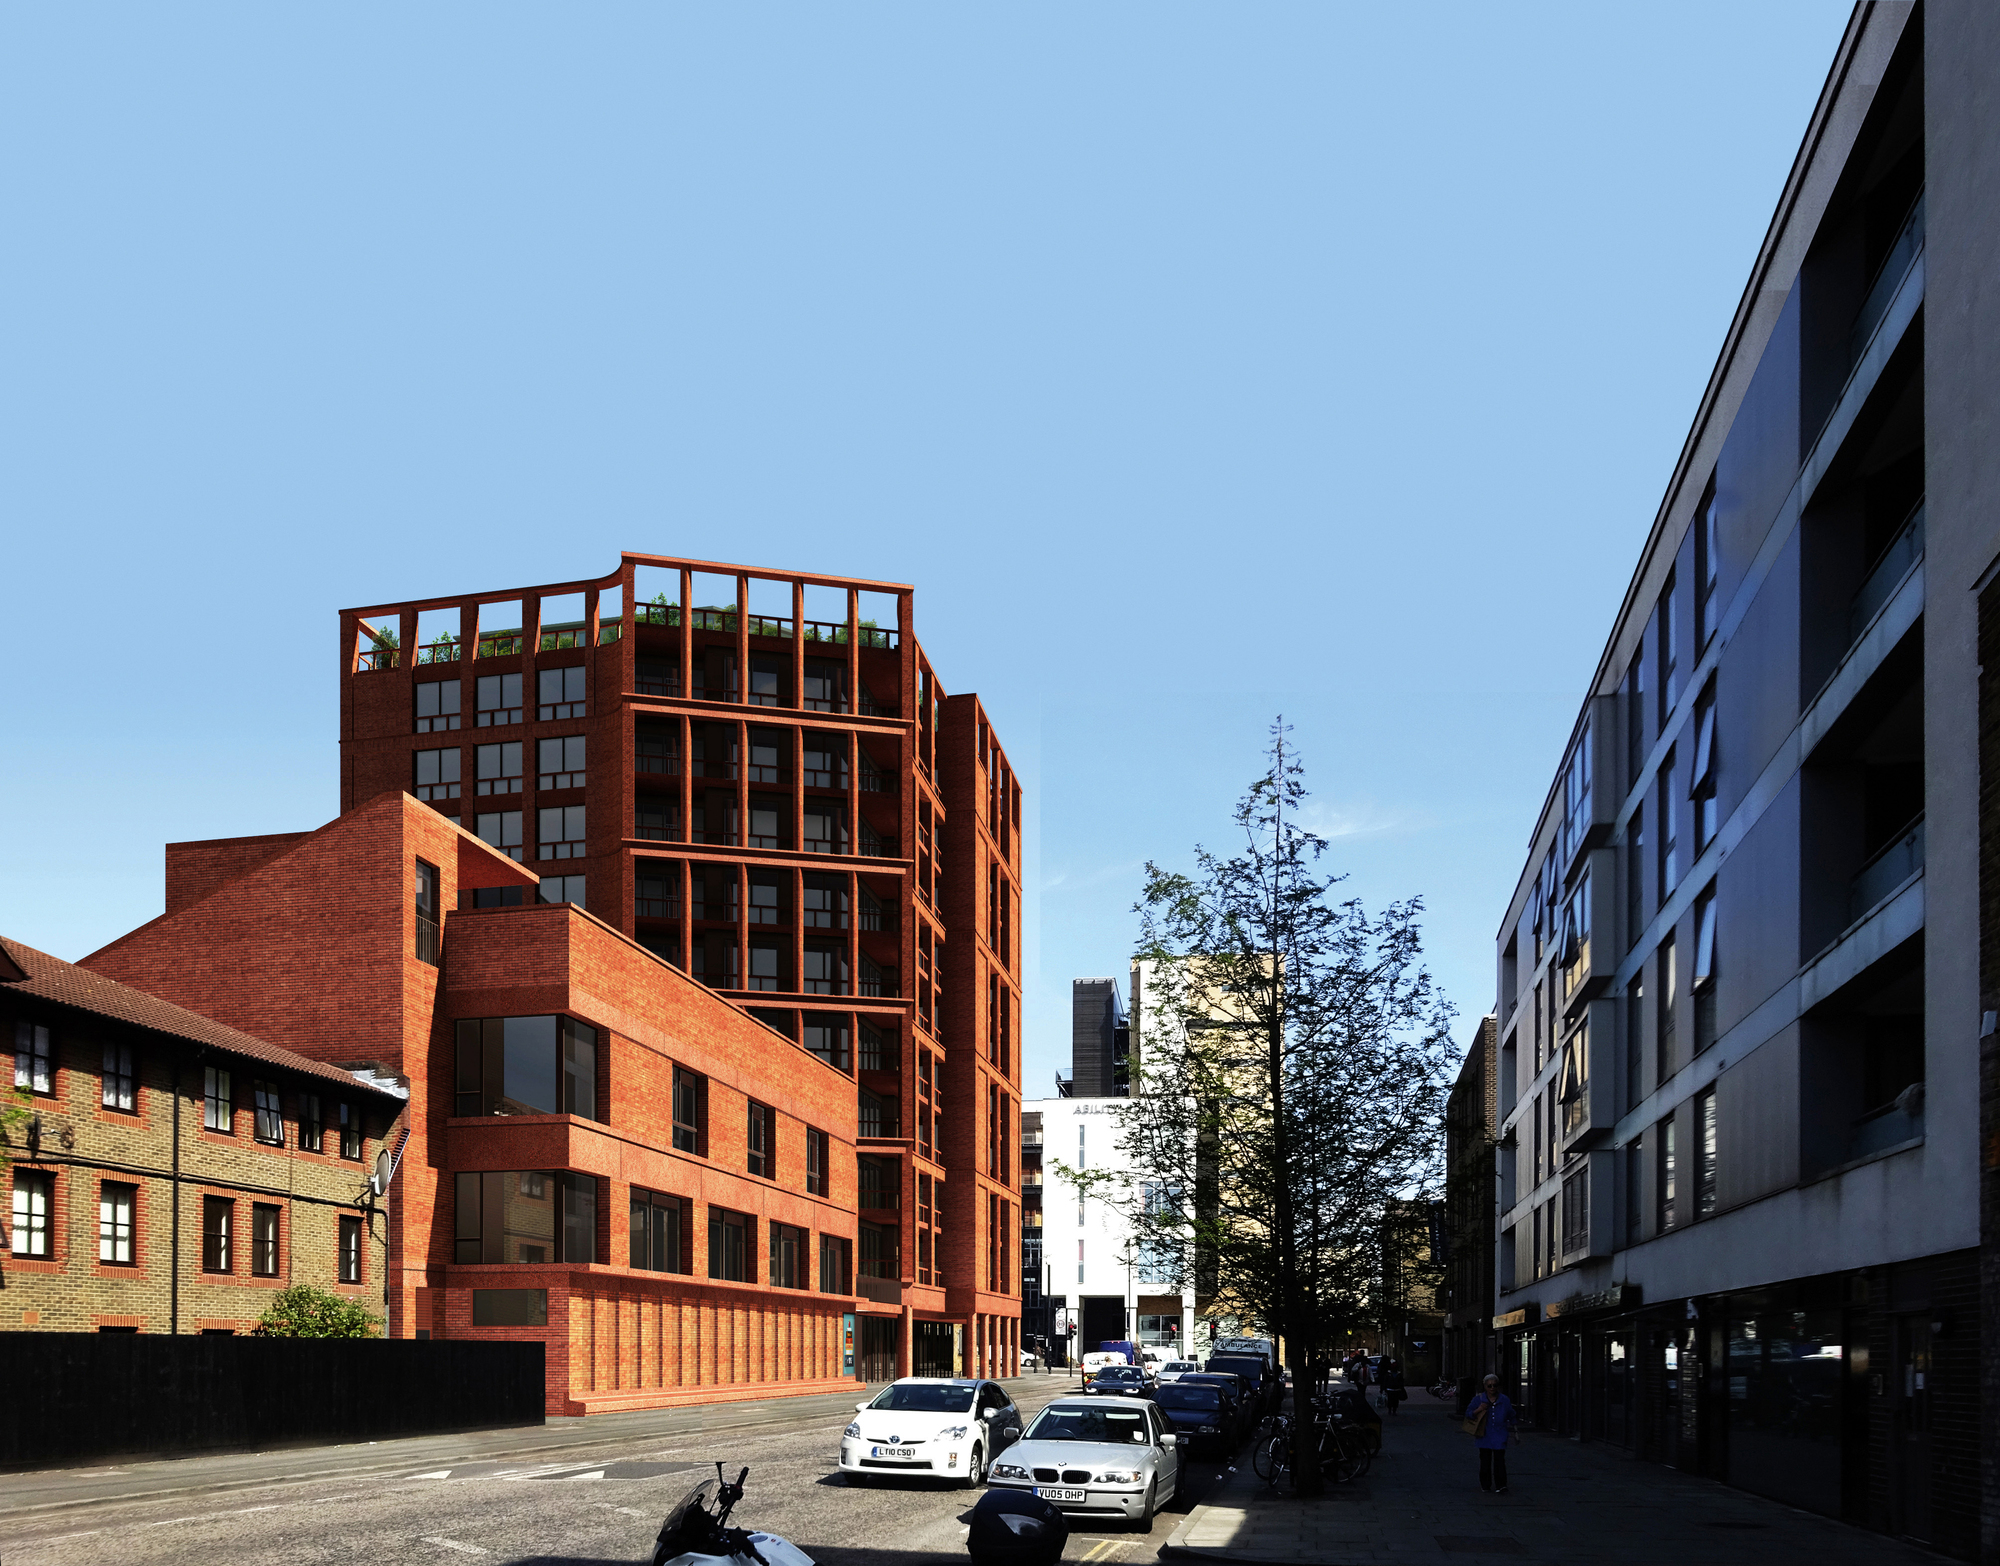 Henley Halebrown Releases New Images Of Mixed Use School In London Looking East Along Downham